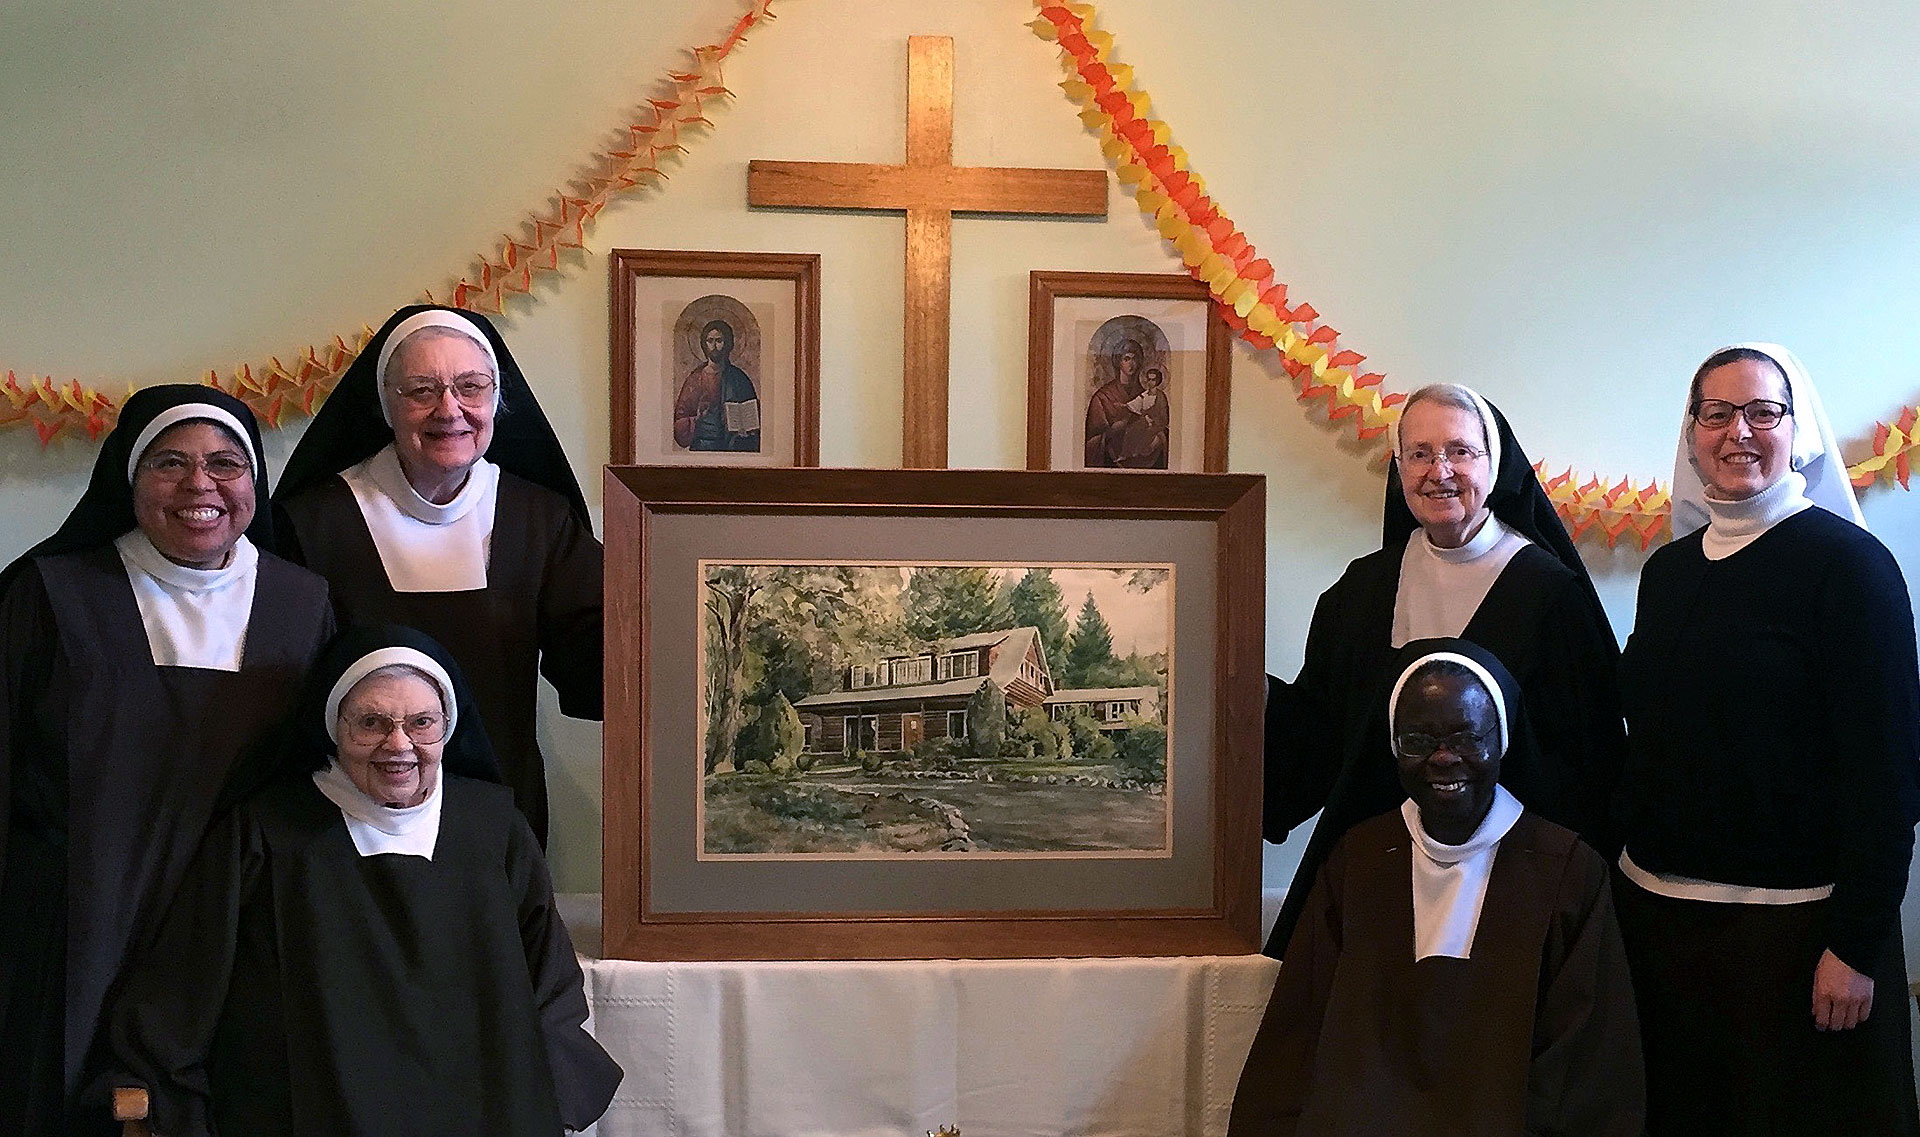 History – Discalced Carmelite Nuns in the Archdiocese of